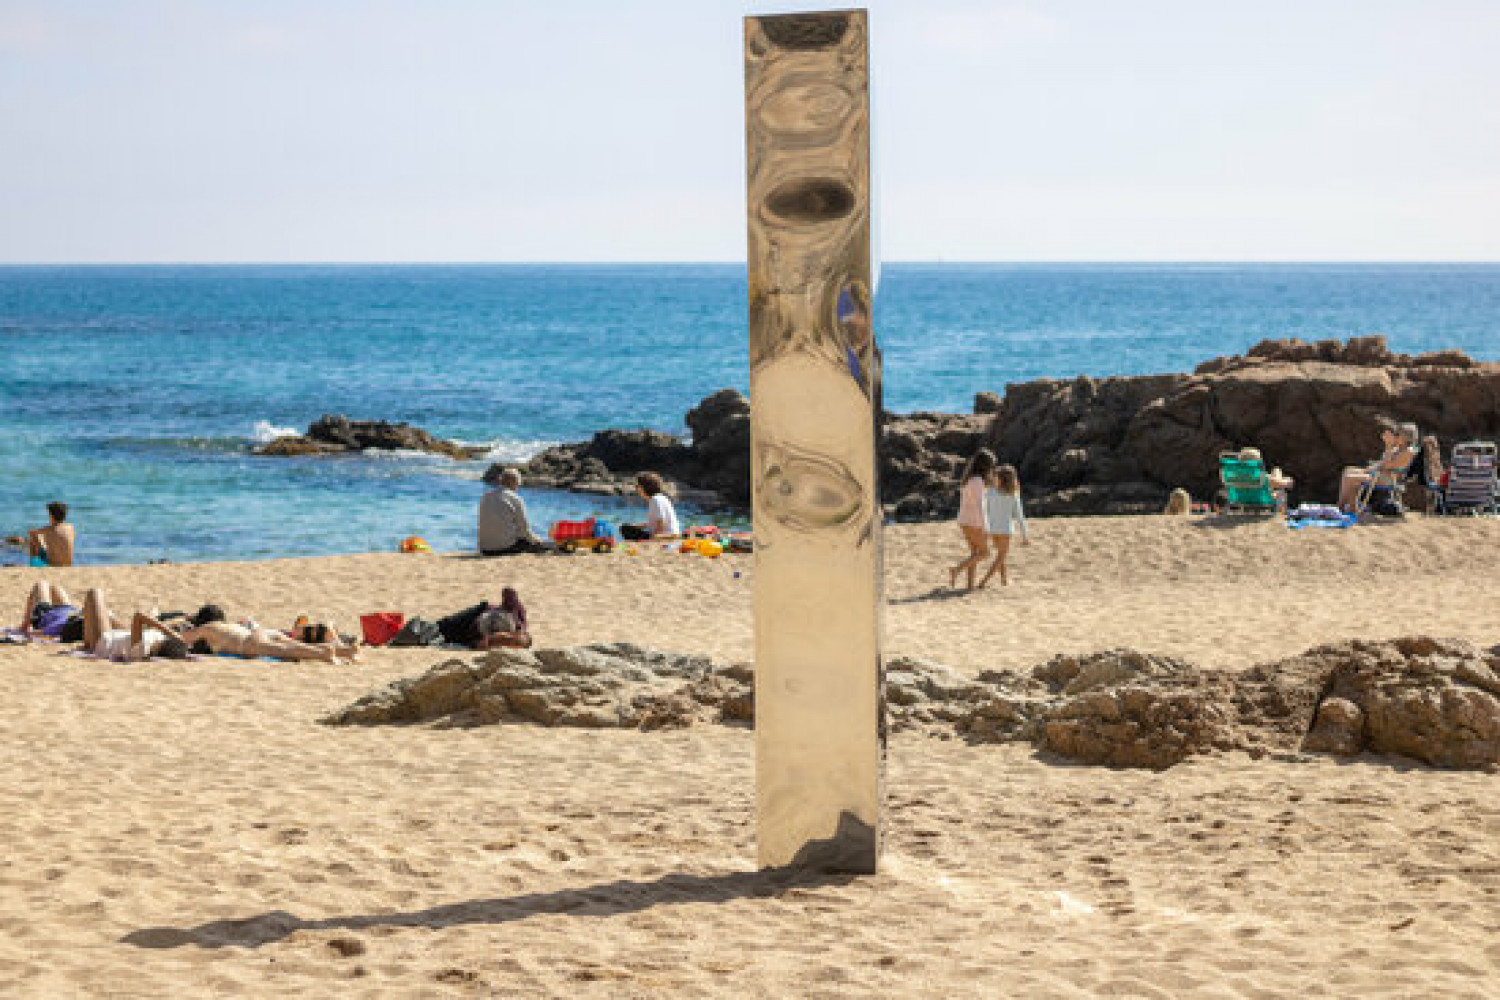 Metal monolith which appeared on Sa Conca beach in S'Agaró, Costa Brava on March 30, 2021 (courtesy of Arocinema Associació)